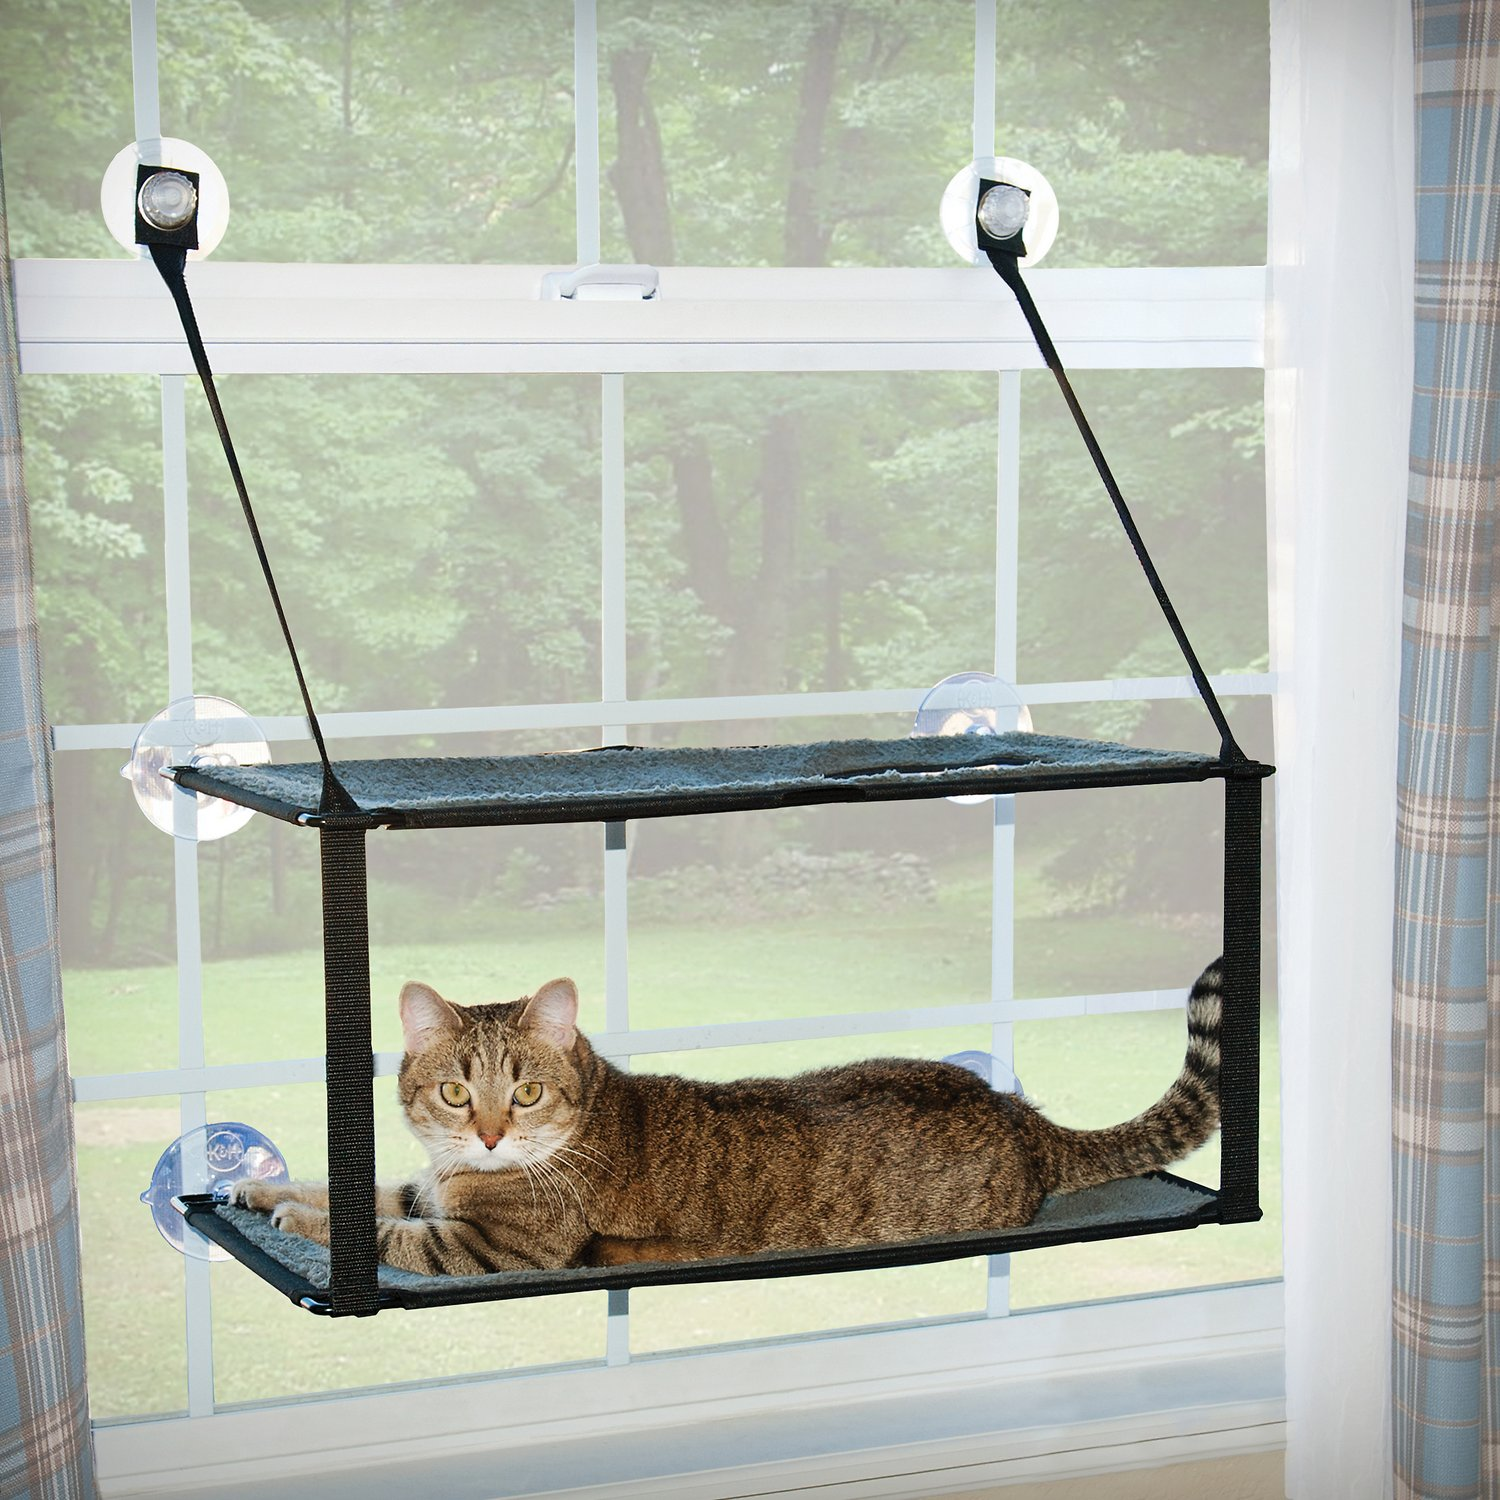 window perch Cat Free shipping at Chewycom